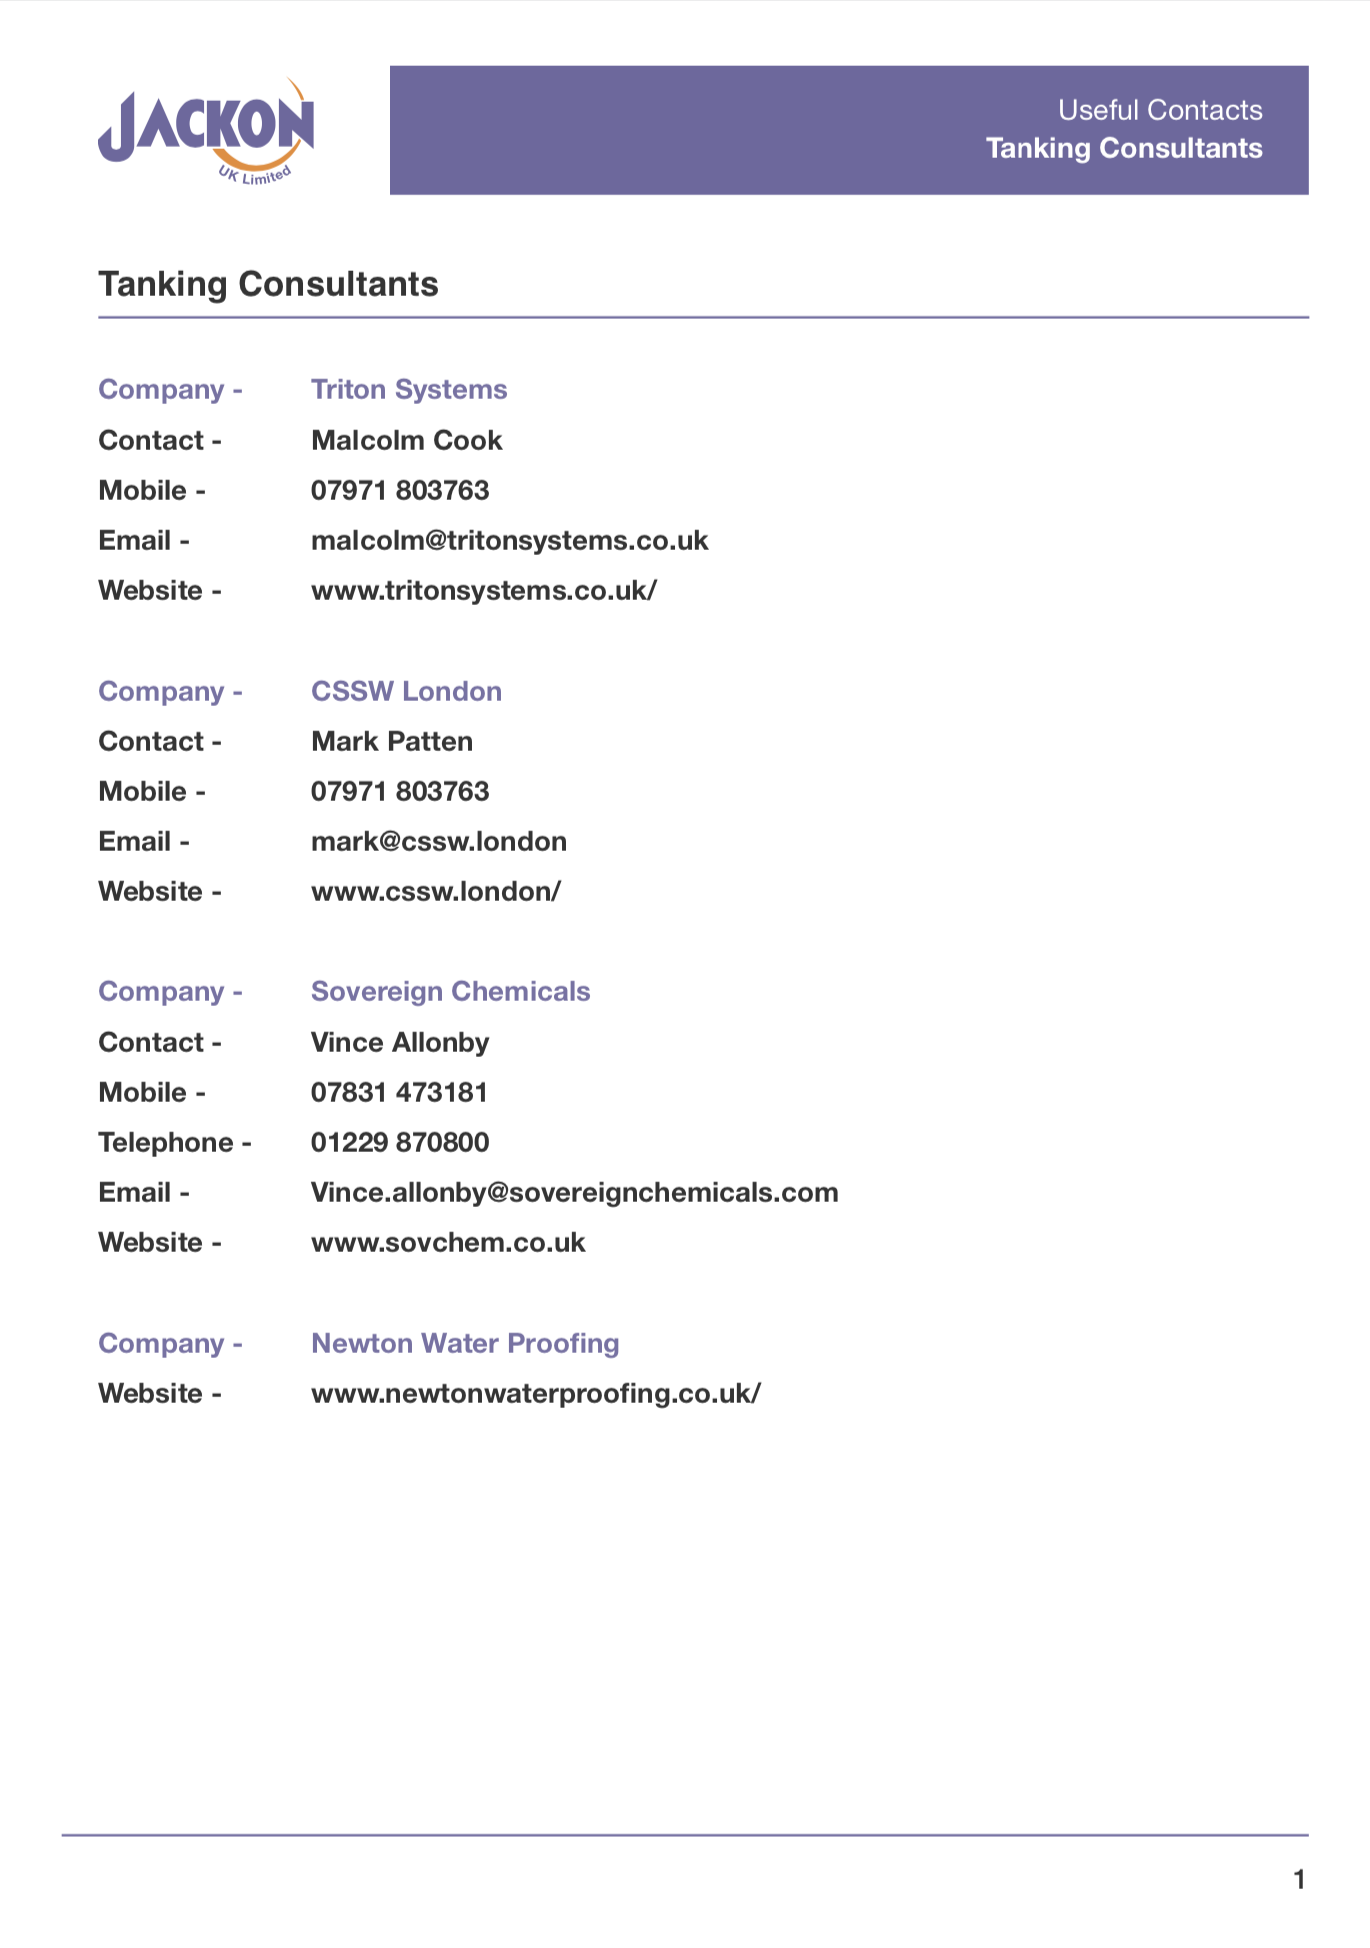 Useful Contacts – Tanking Consultants